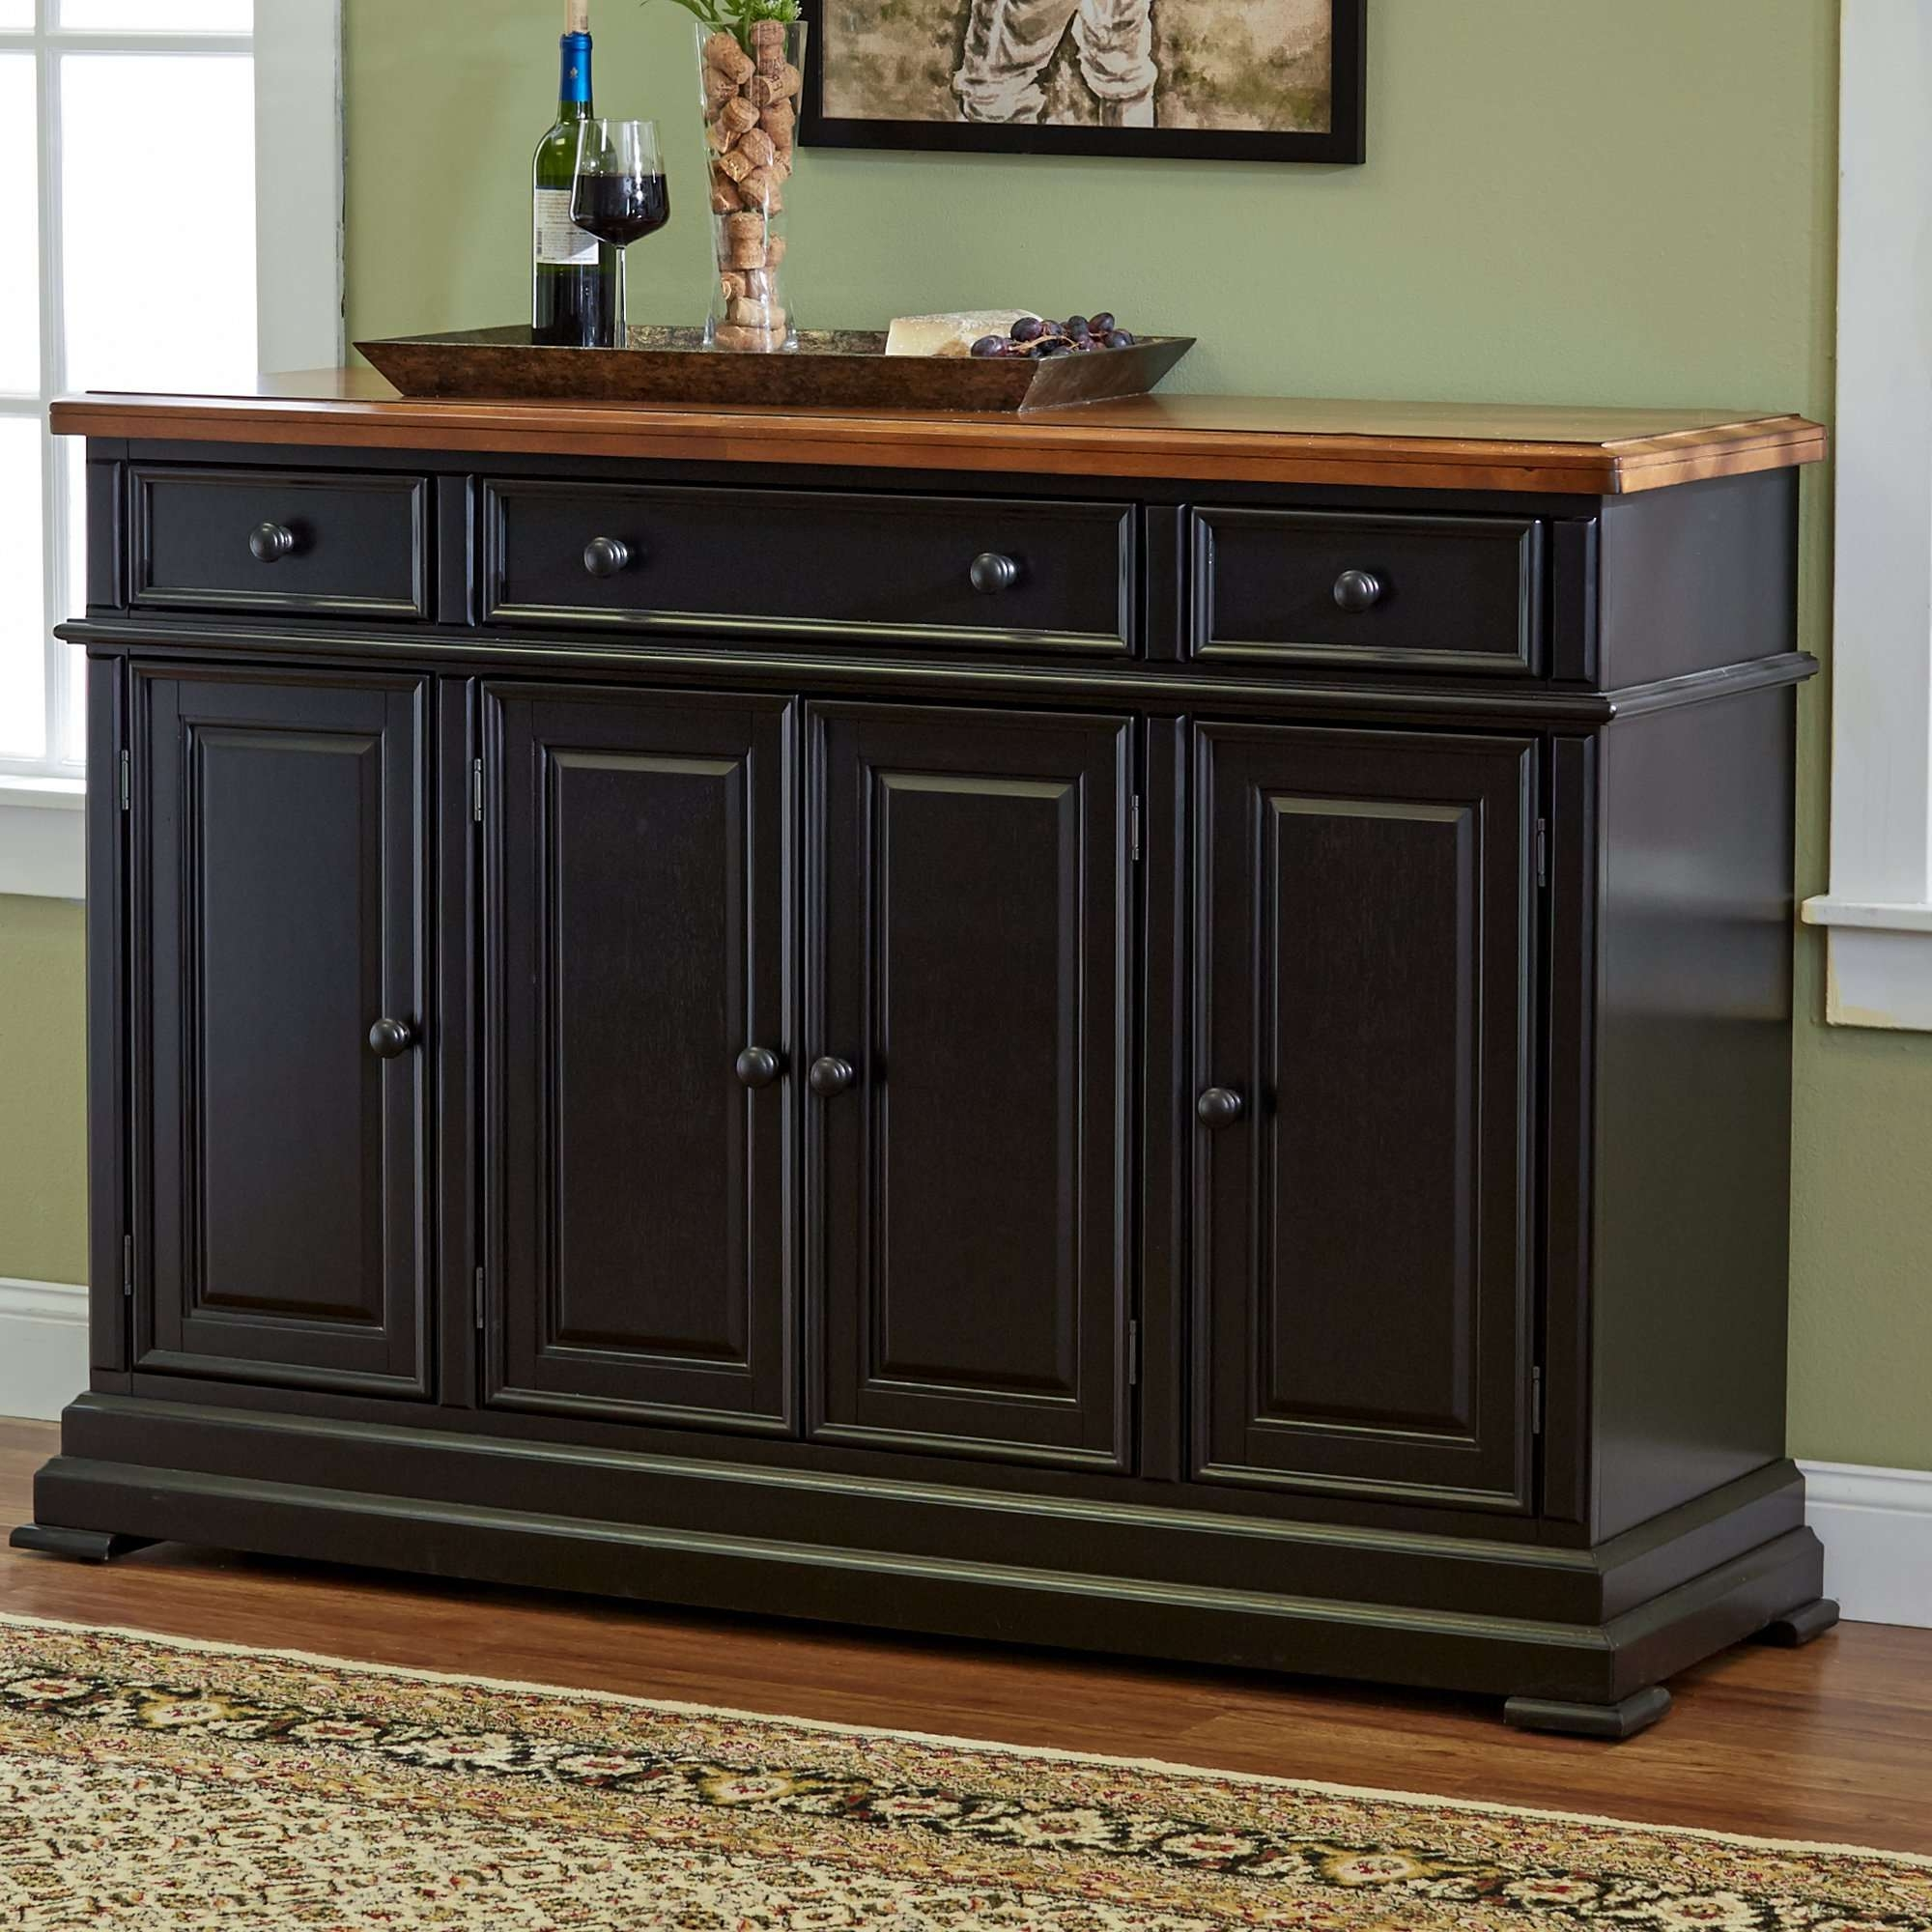 Luxury Rustic Sideboard Buffet – Bjdgjy Throughout Rustic Buffet Sideboards (View 4 of 20)